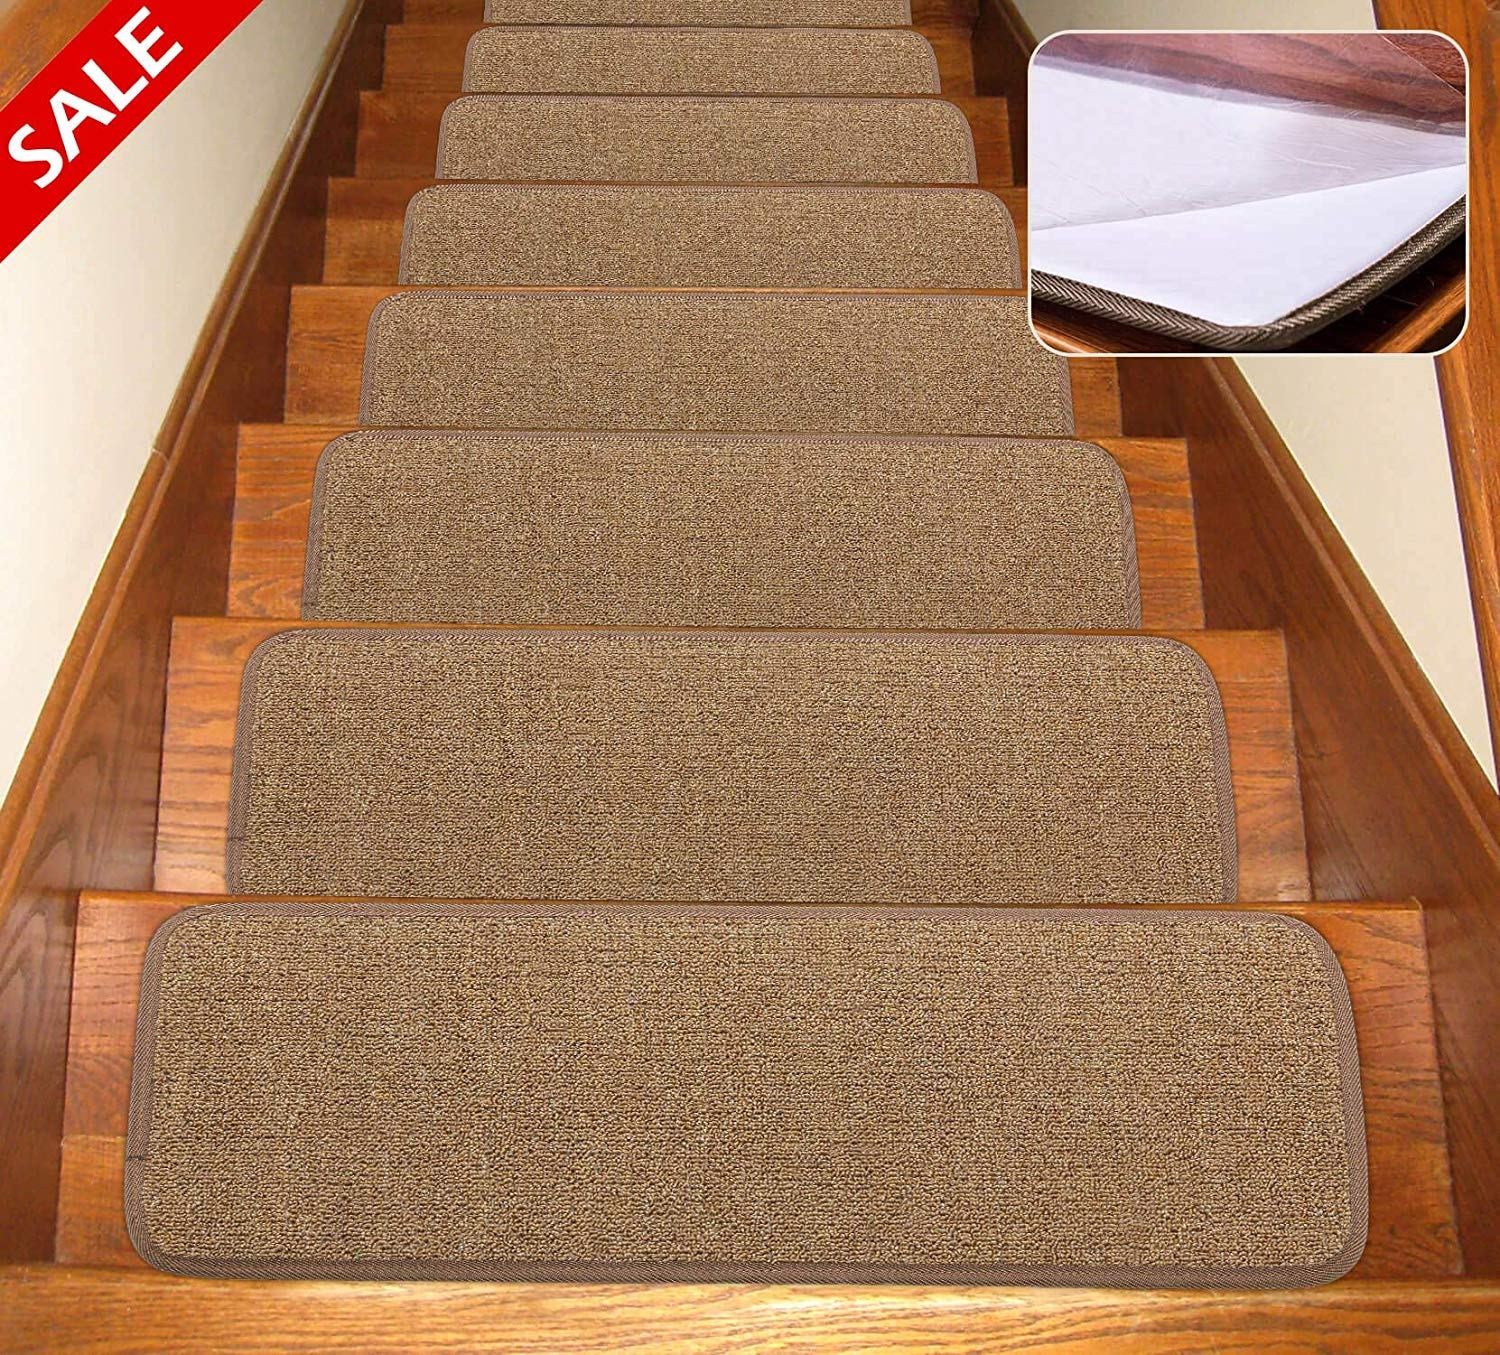 Self Adhesive Non Slip Carpet Stair Treads Canine Arthritis | Carpet Treads For Wooden Stairs | Commercial Rubber | Rectangular Cord Treads | Carpet Wrapped | Self Adhesive | Different Style Stair